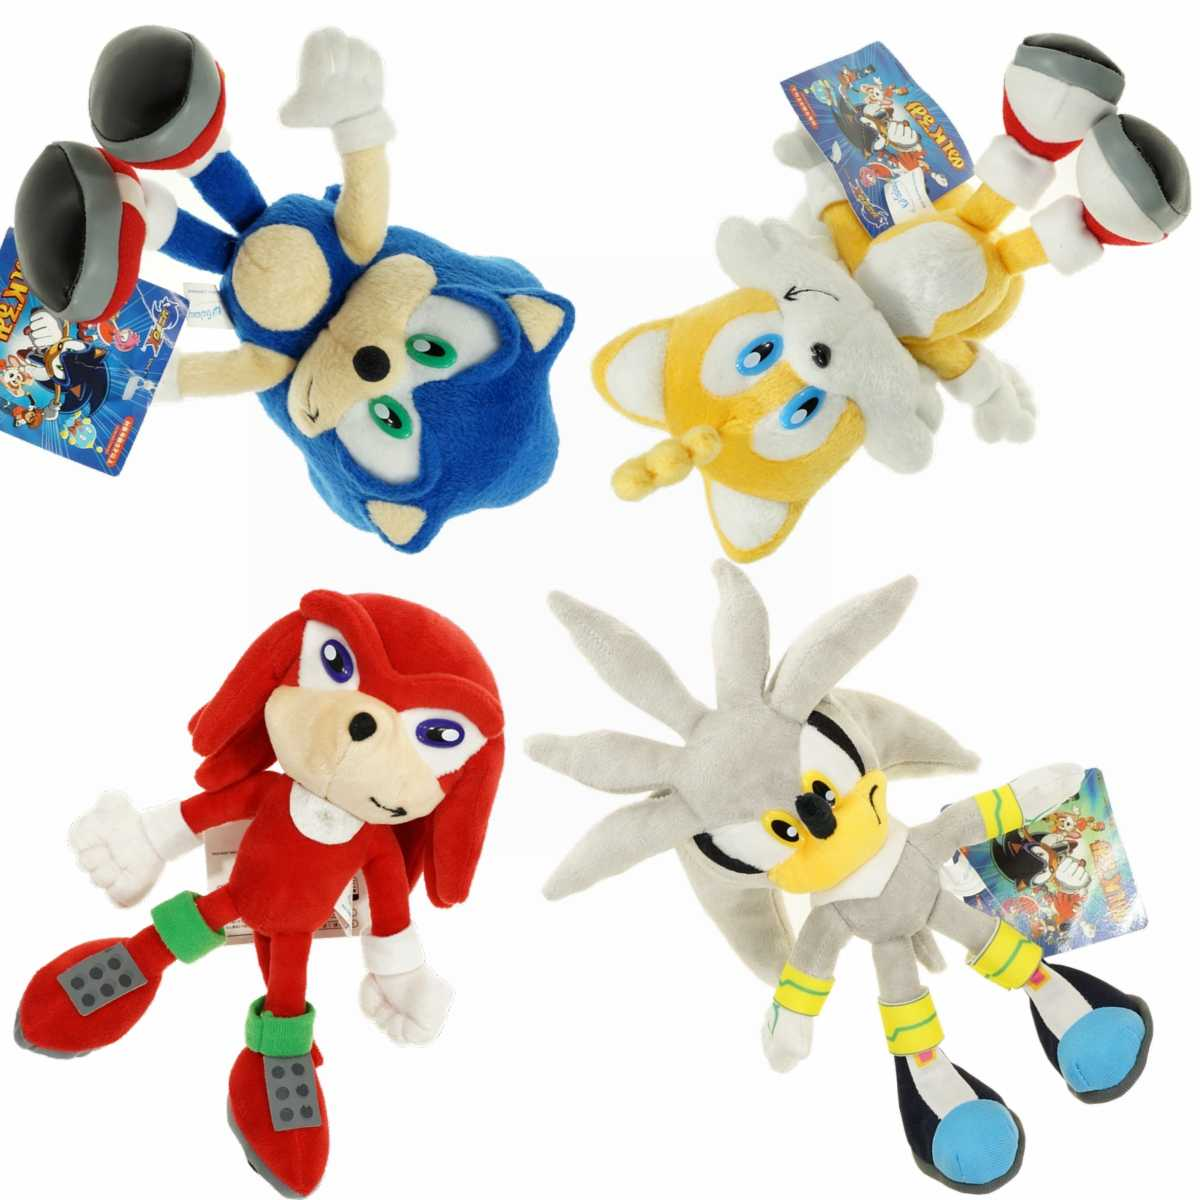 23 cm Movies & TV Game Sonic the hedgehog Brinquedos de Pelúcia Boneca